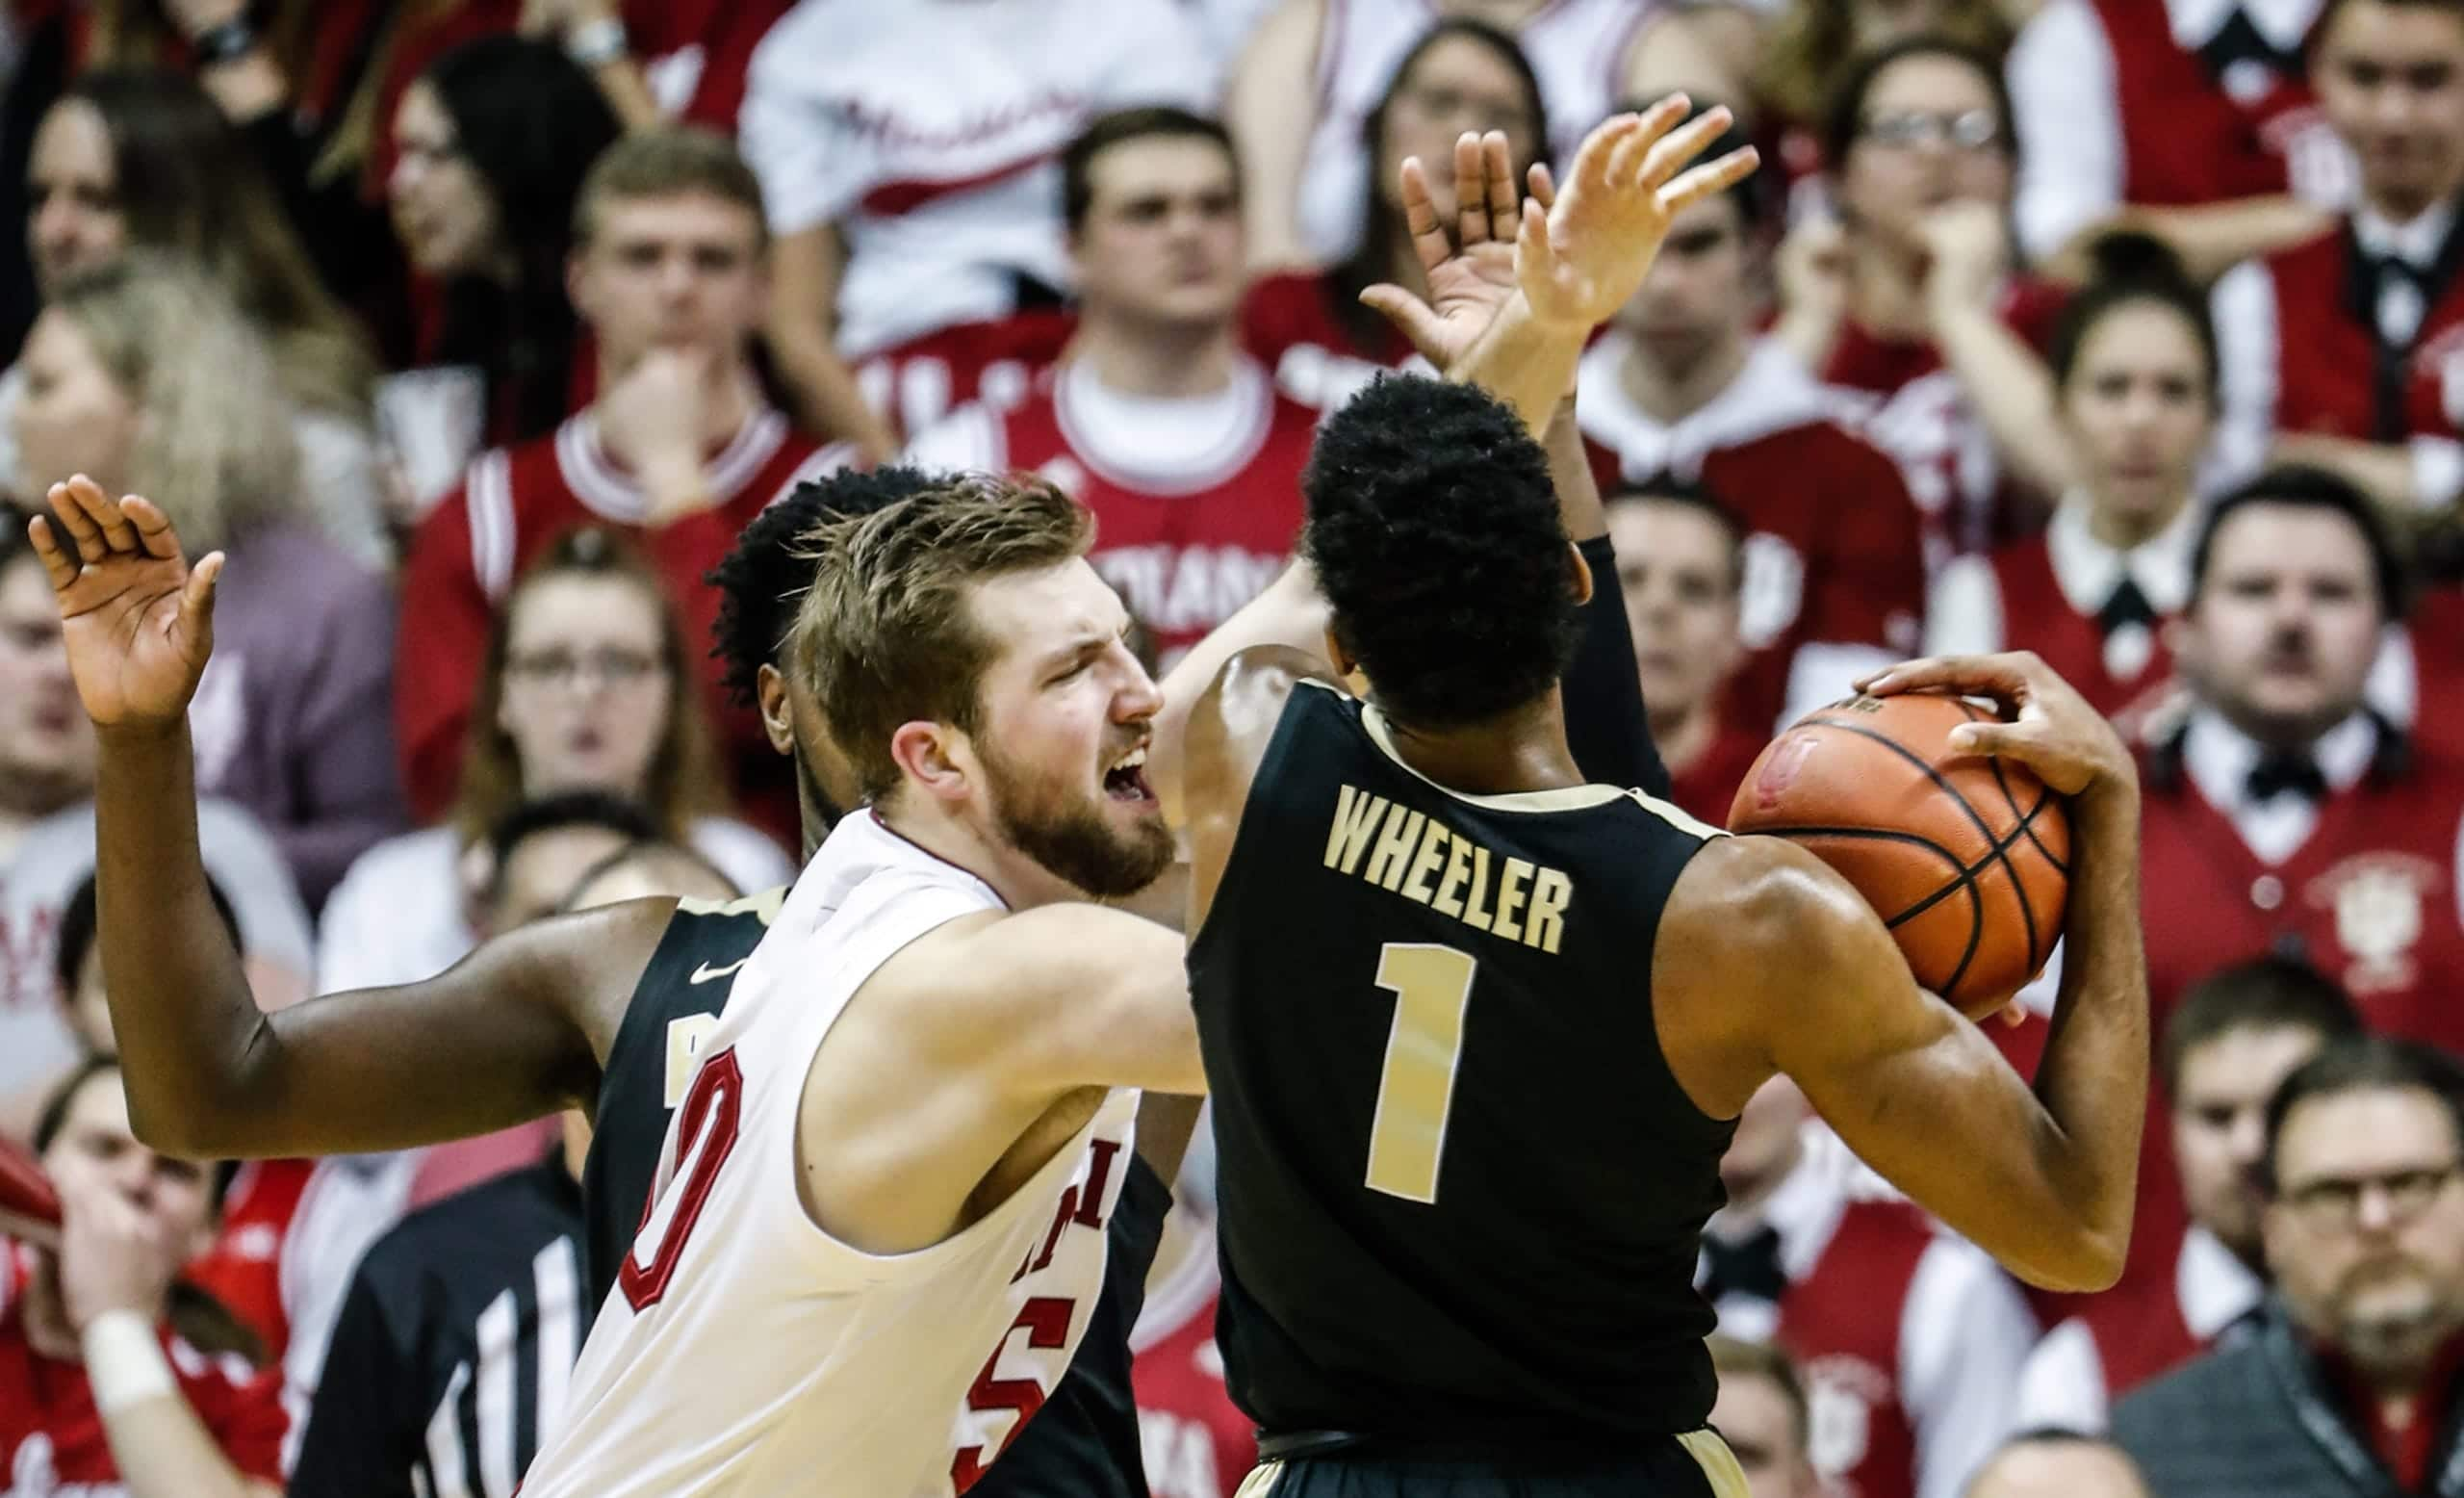 Indiana Hoosiers at Purdue Boilermakers 02/27/20 ATS Pick & Prediction